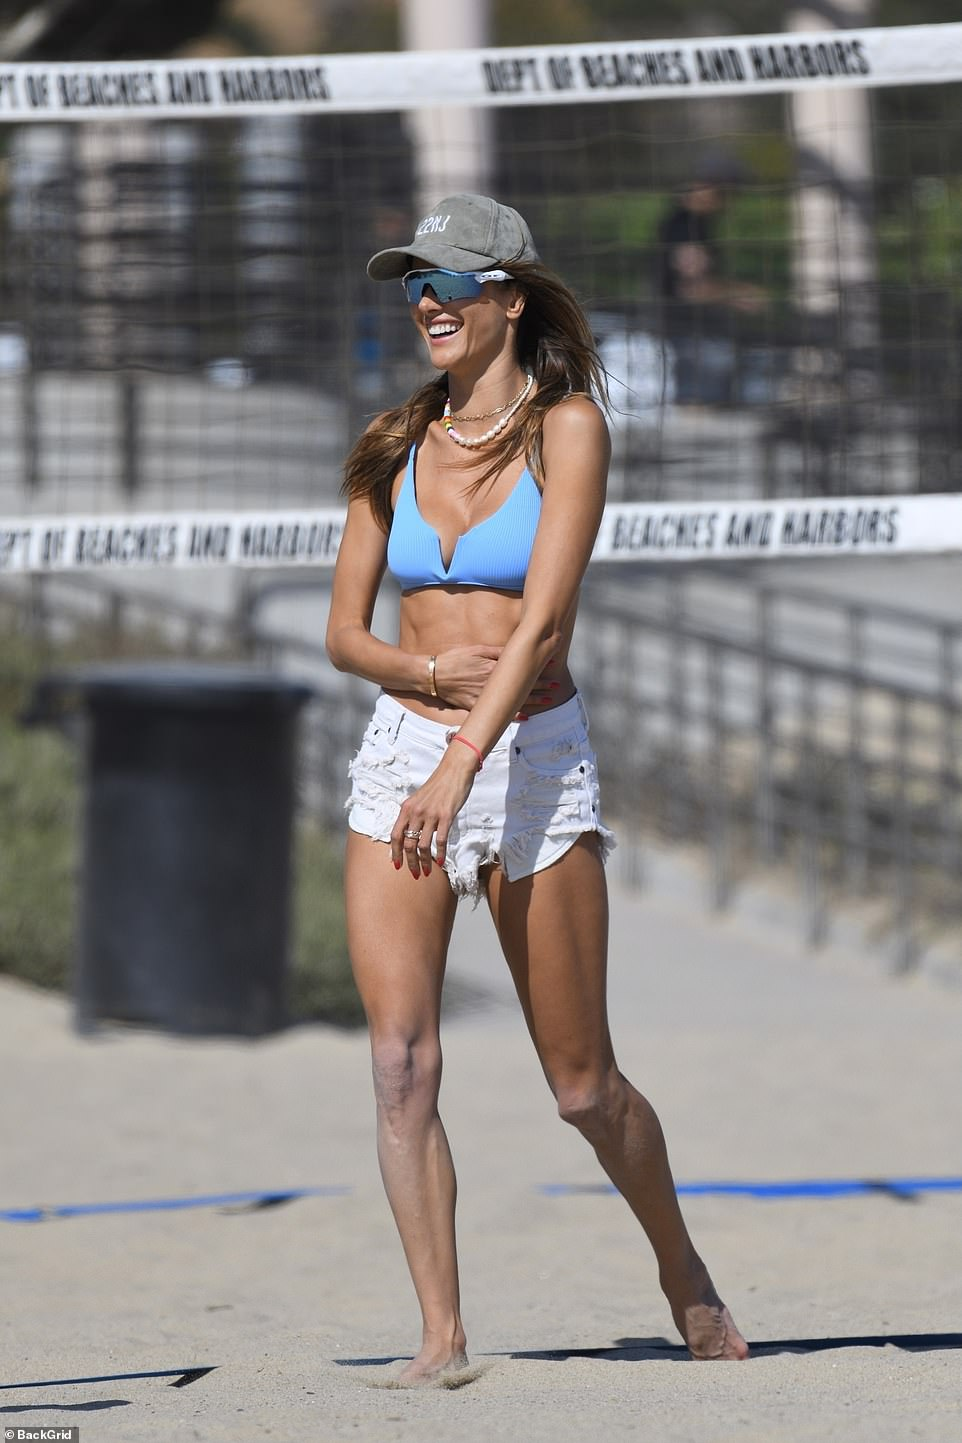 Basking in the sun: Alessandra had on wraparound Oakley-style sunglasses and a weathered gray baseball cap